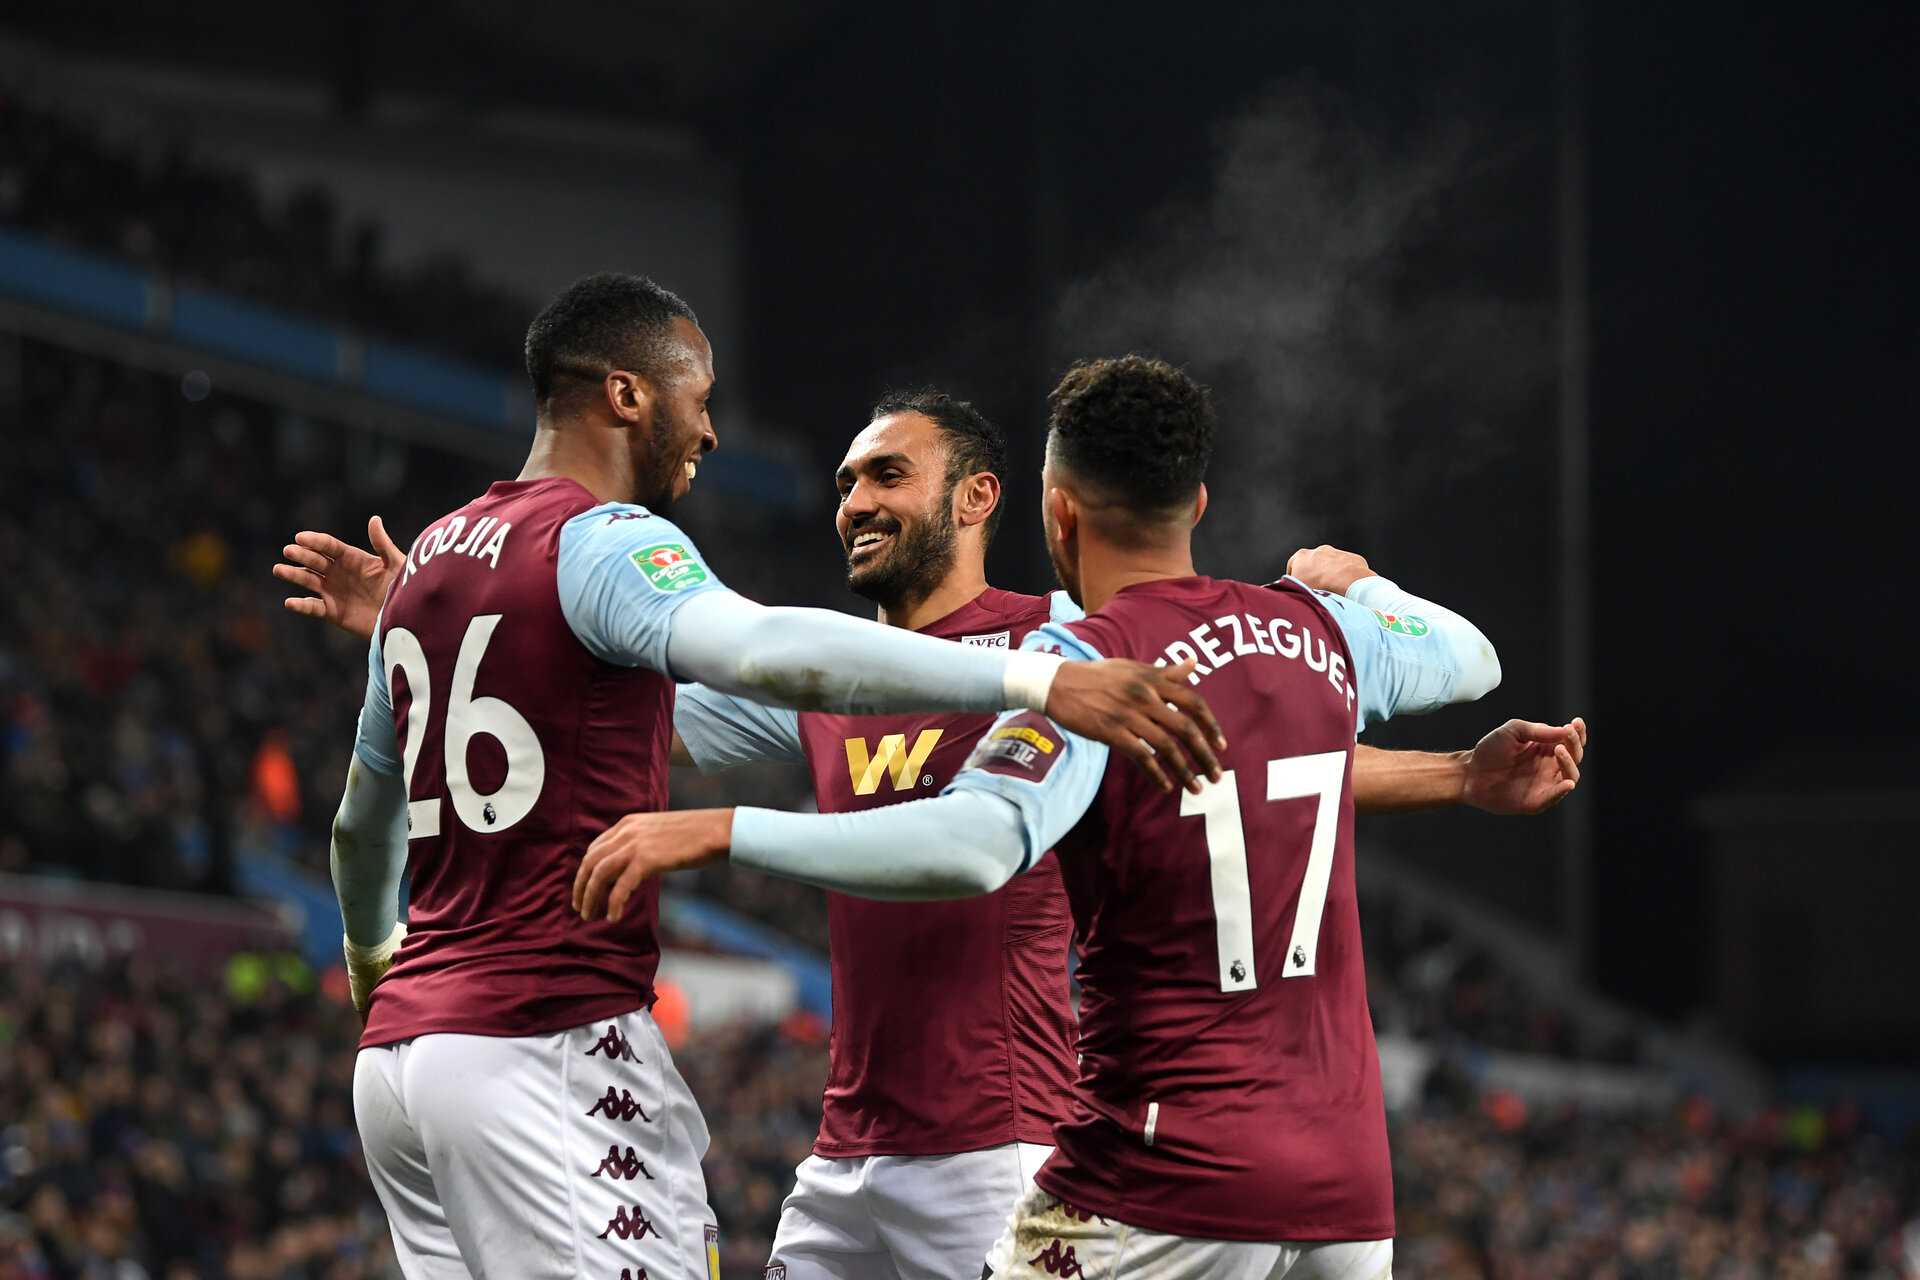 BIRMINGHAM, ENGLAND - DECEMBER 17: Jonathan Kodija of Aston Villa celebrates after scoring his team's fourth goal with Ahmed Elmohamady and Mahmoud Hassan during the Carabao Cup Quarter Final match between Aston Villa and Liverpool FC at Villa Park on December 17, 2019 in Birmingham, England. (Photo by Michael Regan/Getty Images)